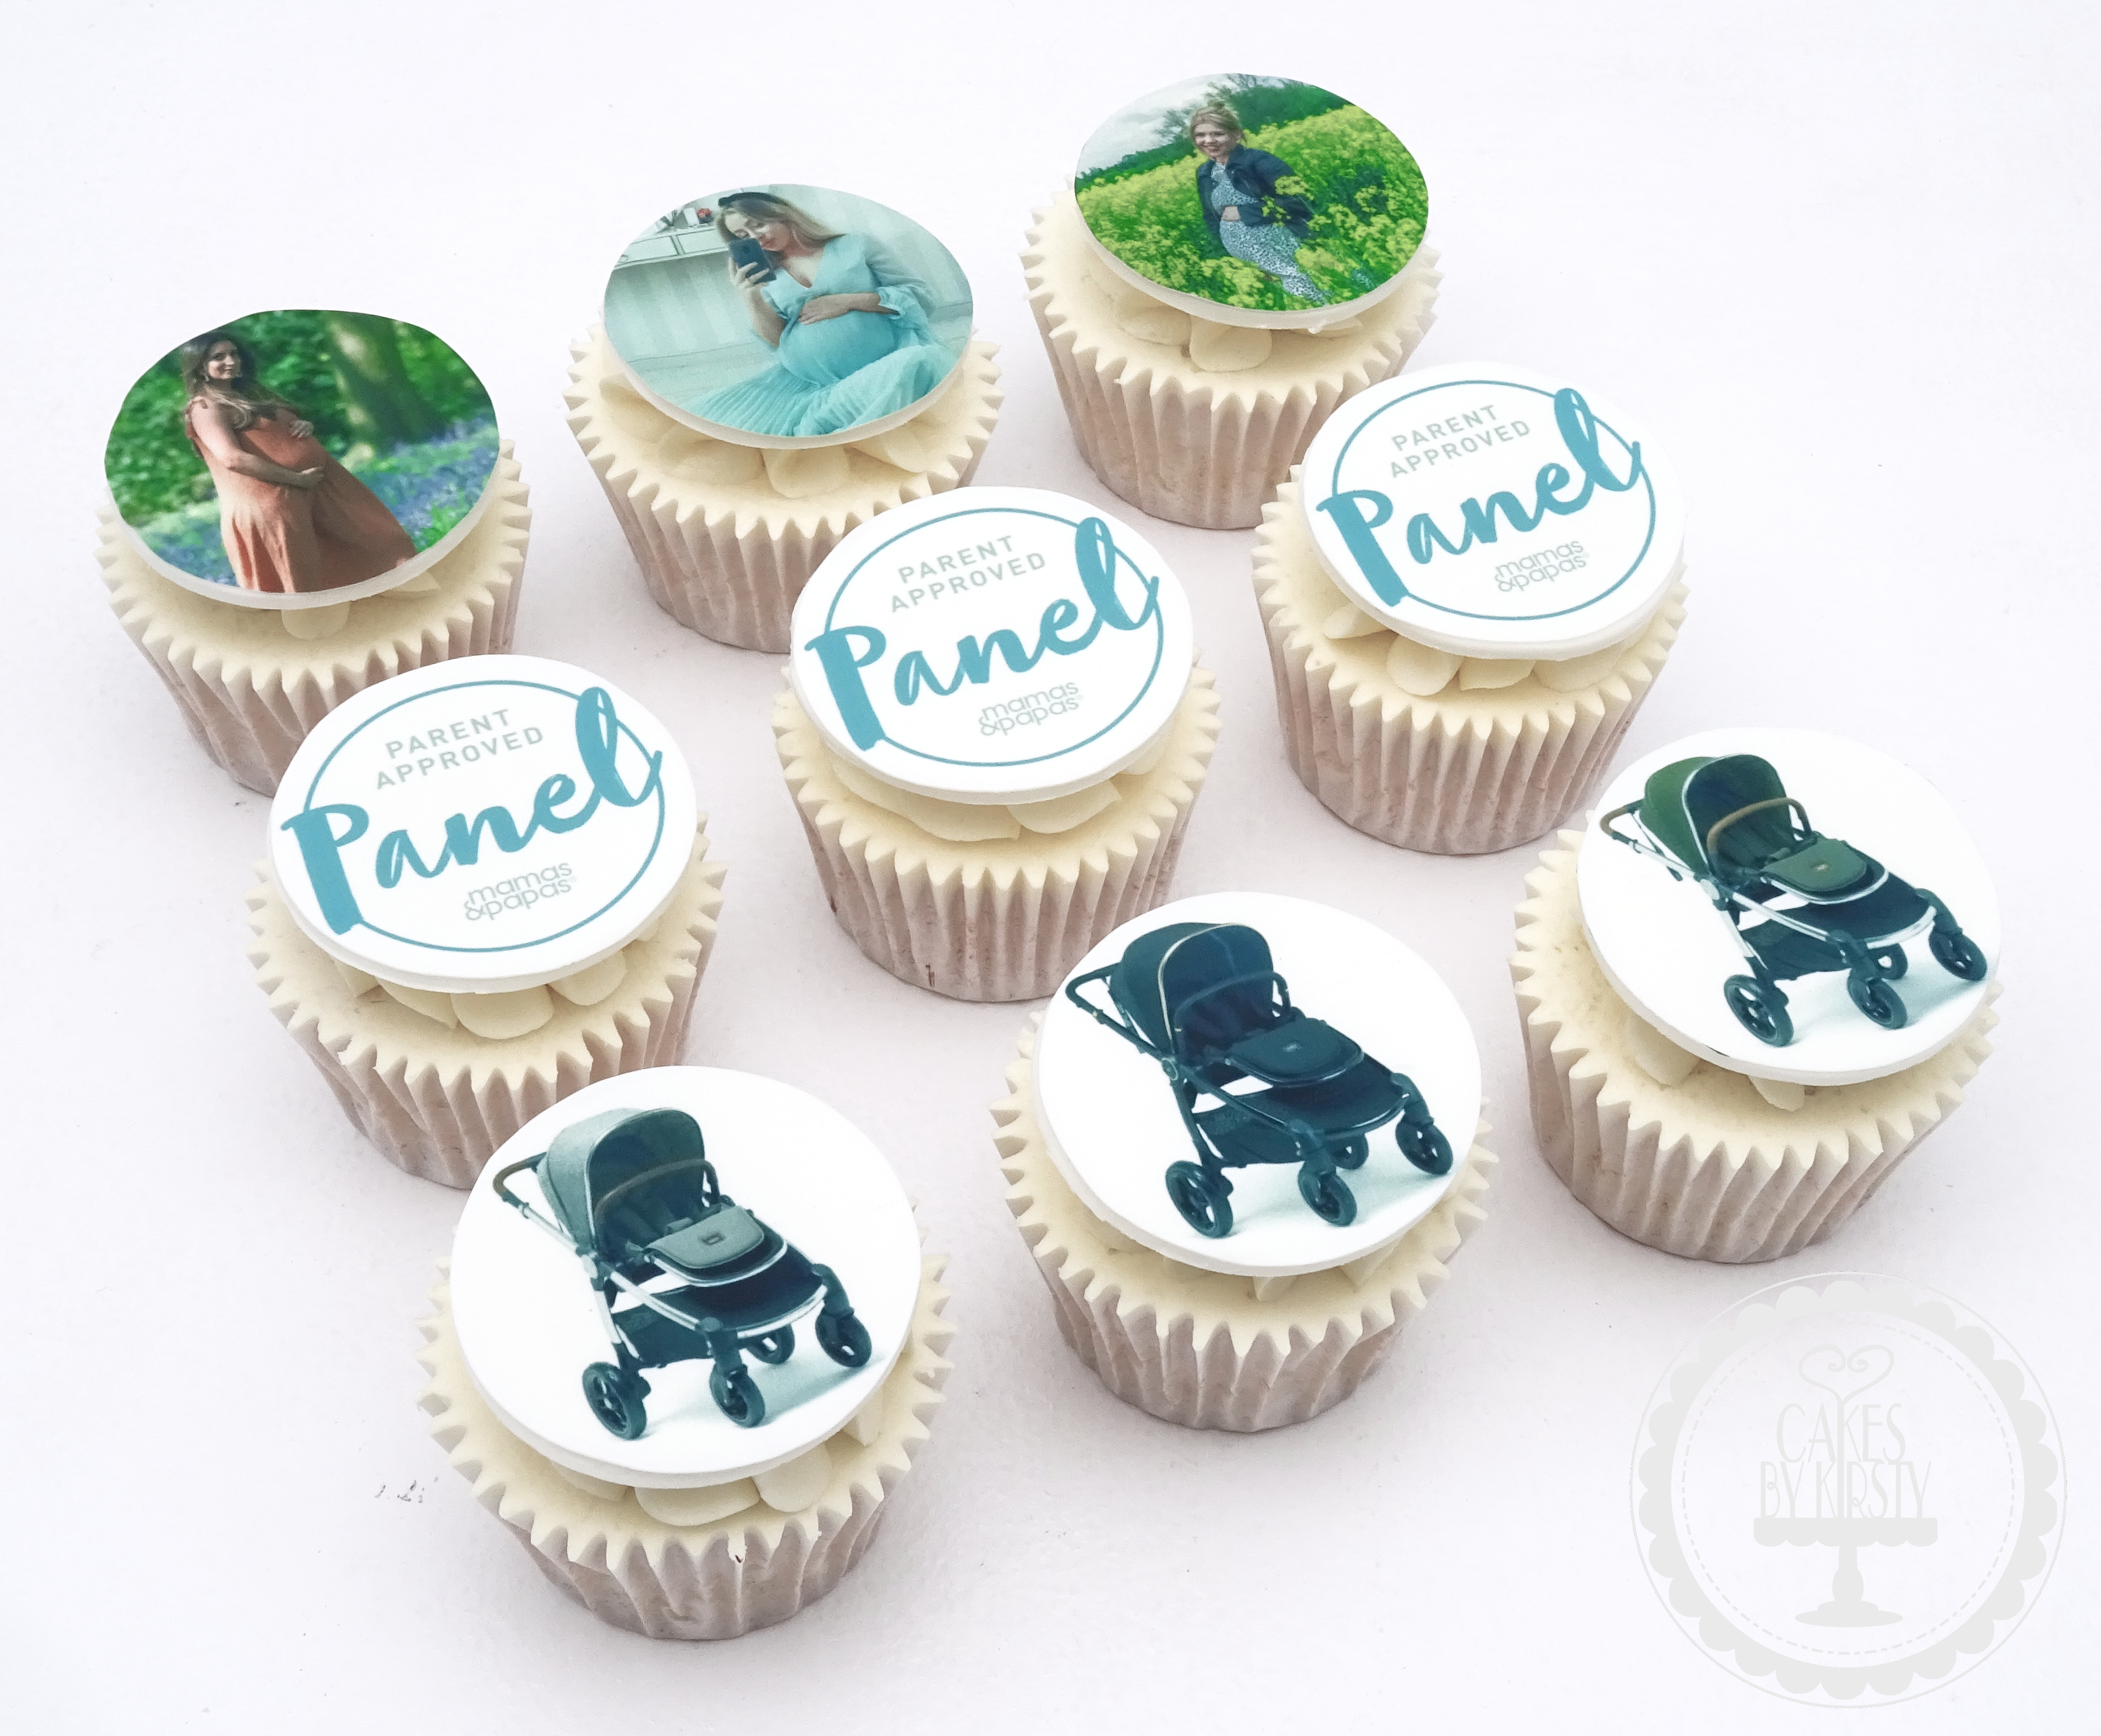 Mamas & Papas Panel Event Cupcakes